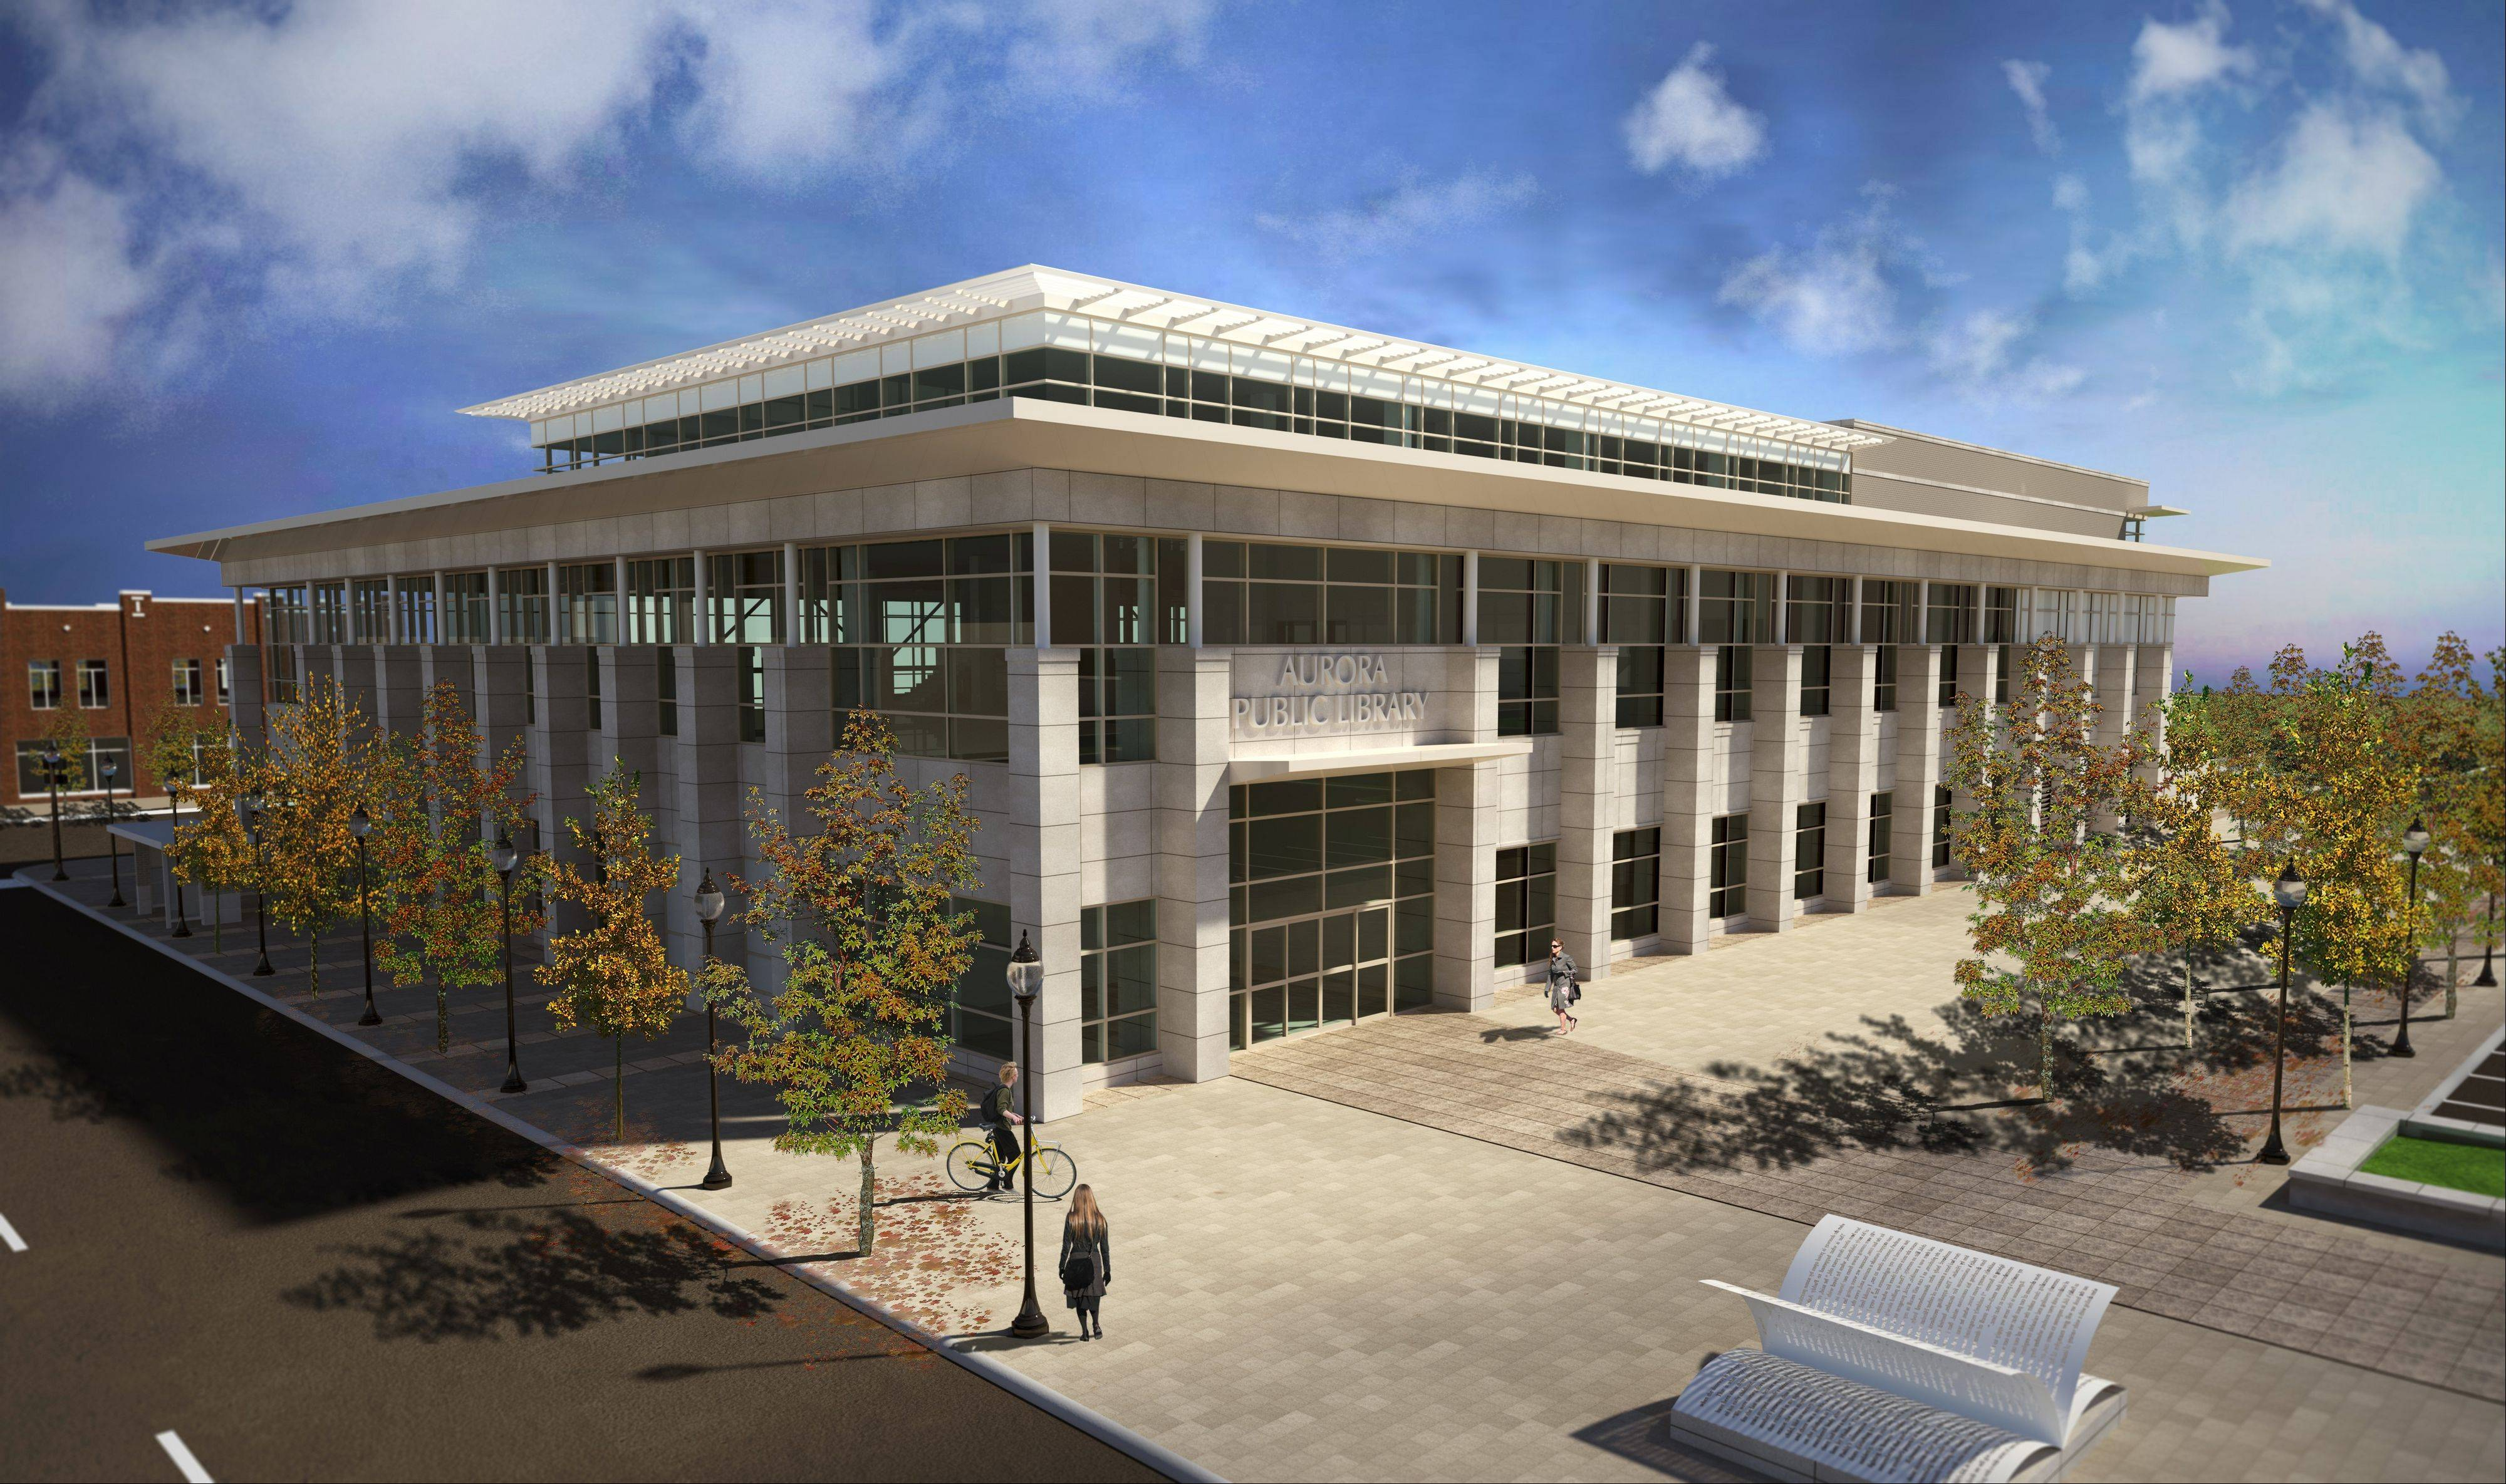 Aurora gets $10.8 million grant to fund new library